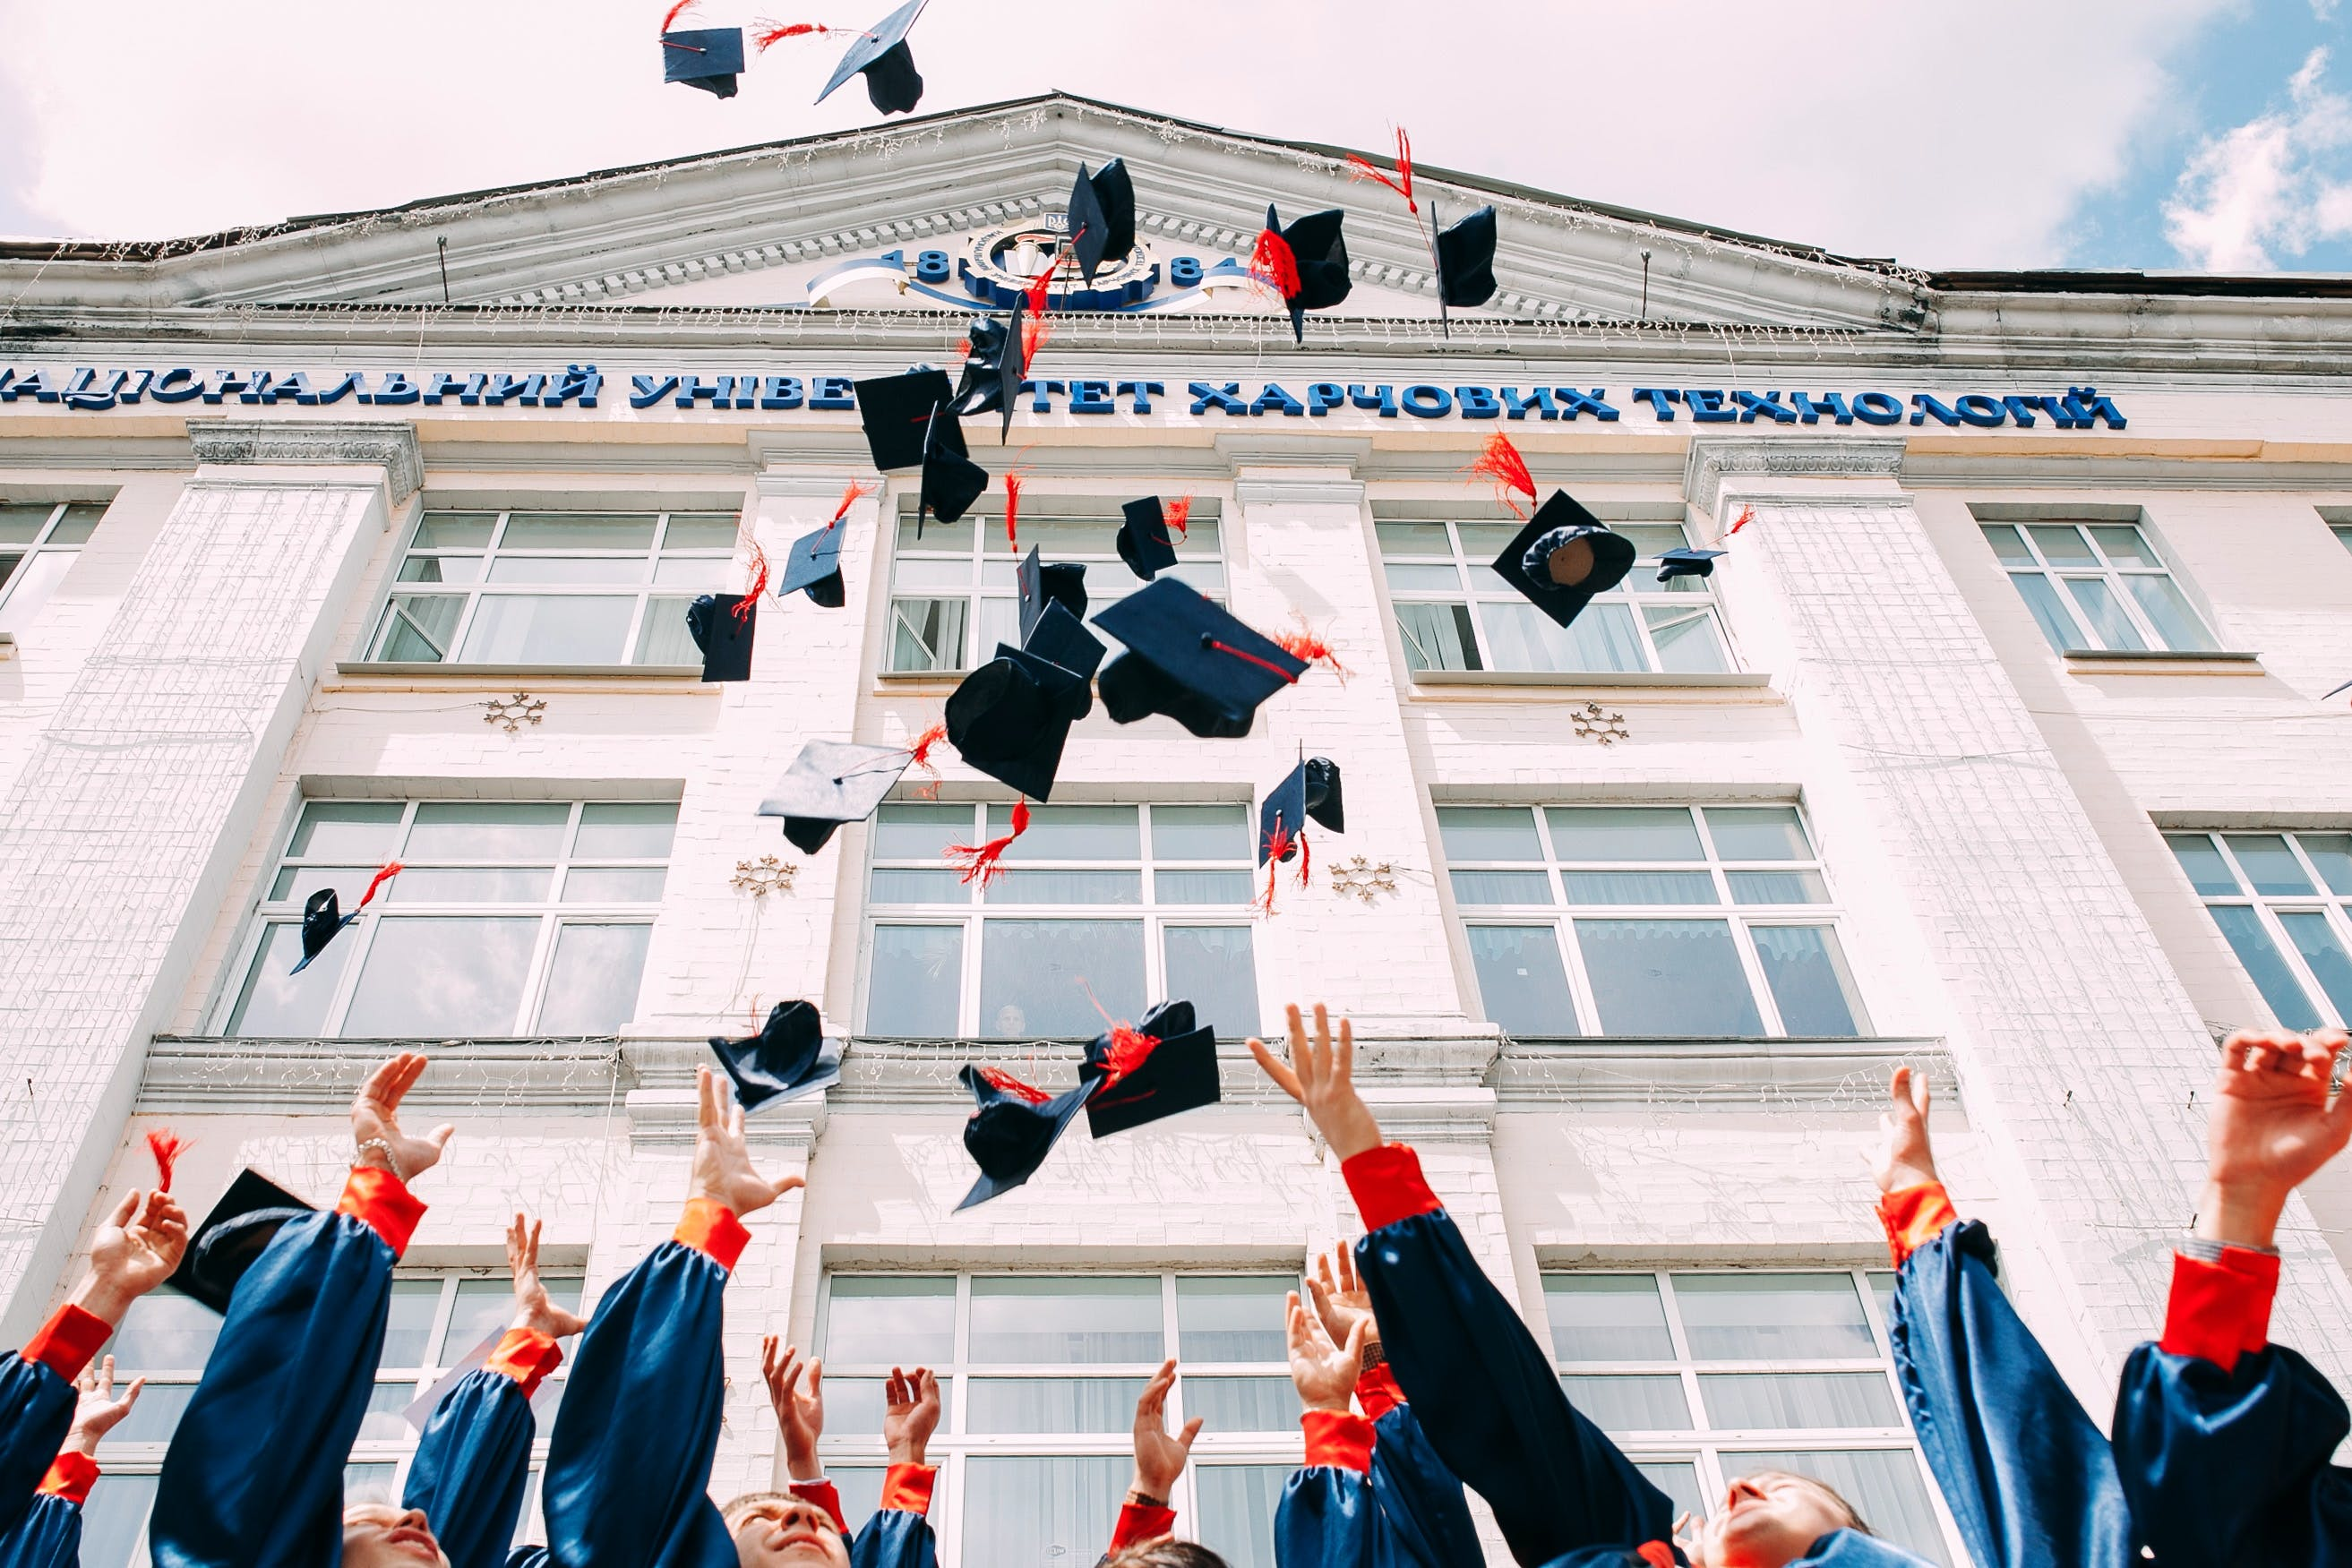 Education and its campuses are dramatically changing